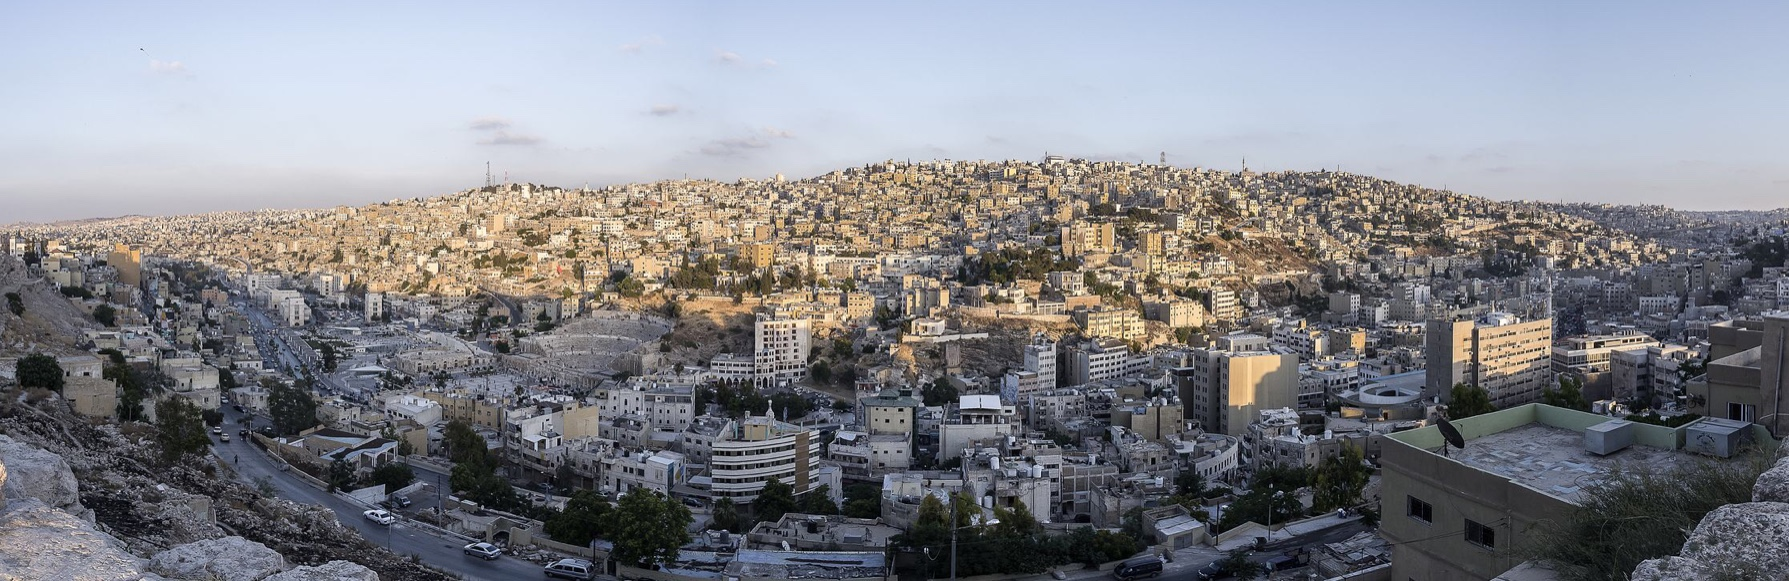 Amman, Jordan…oldest city on earth